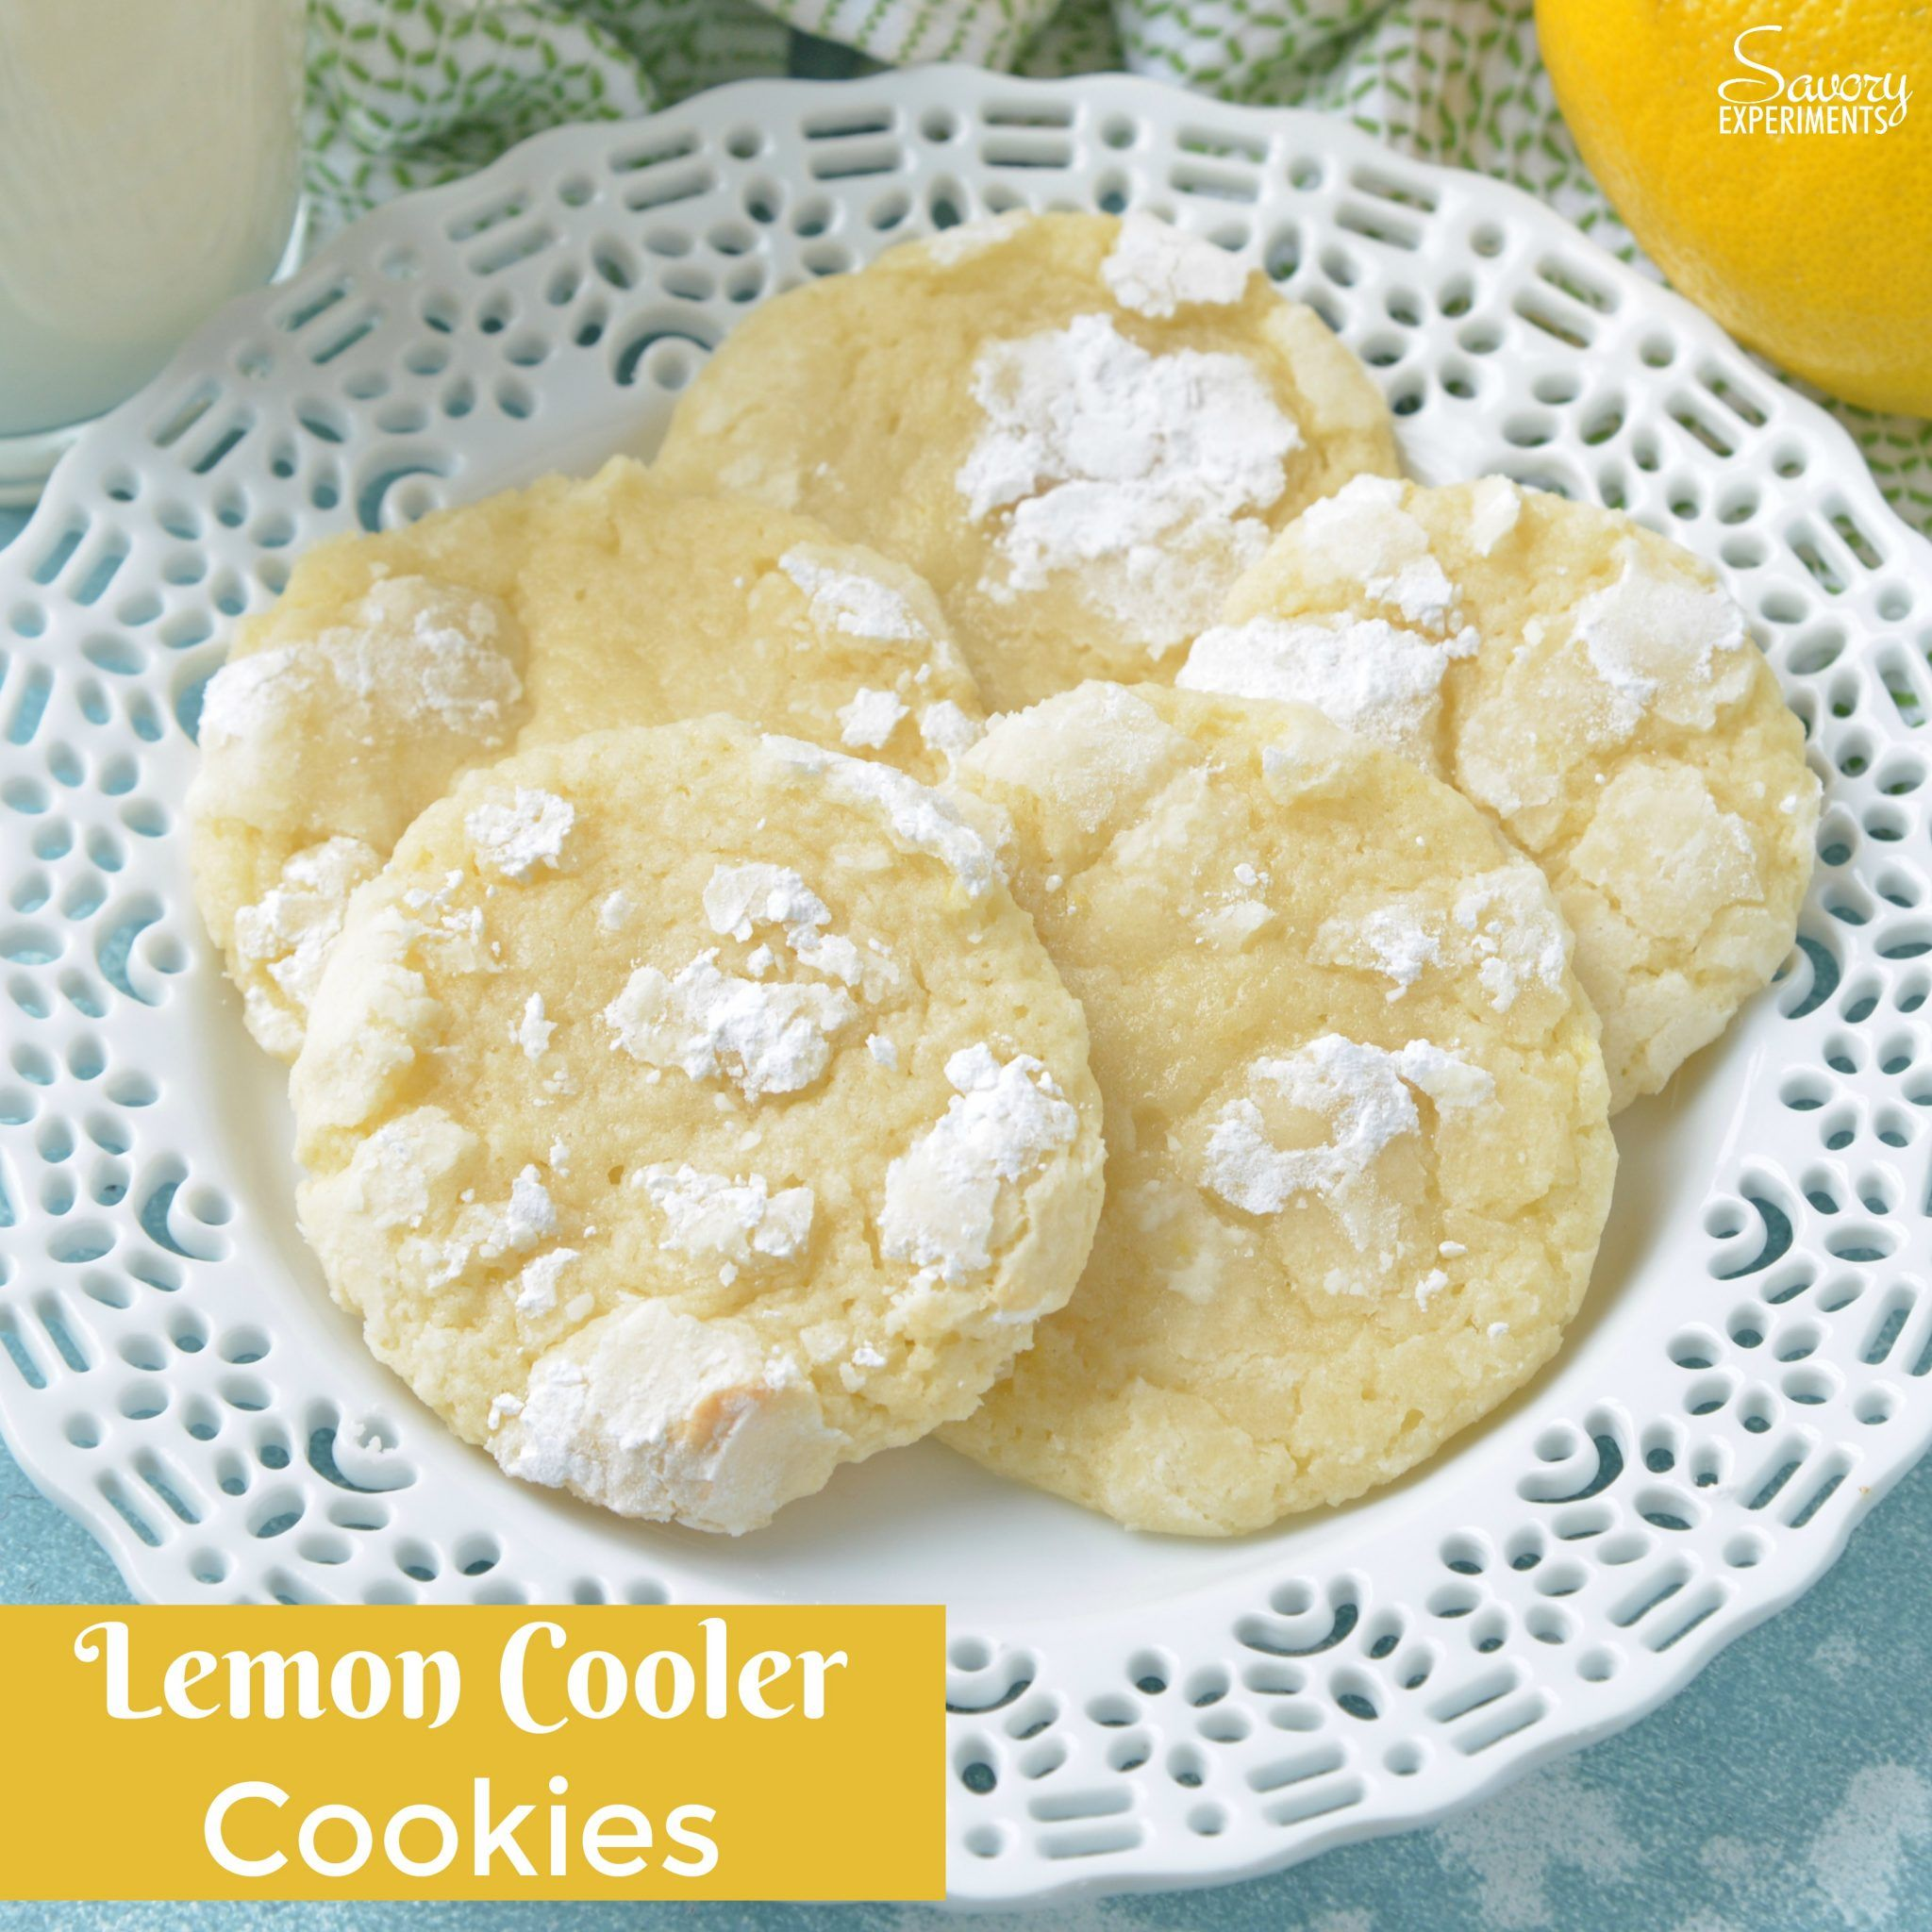 lemon cooler cookies also known as sunshine lemon coolers are a classic cookie recipe